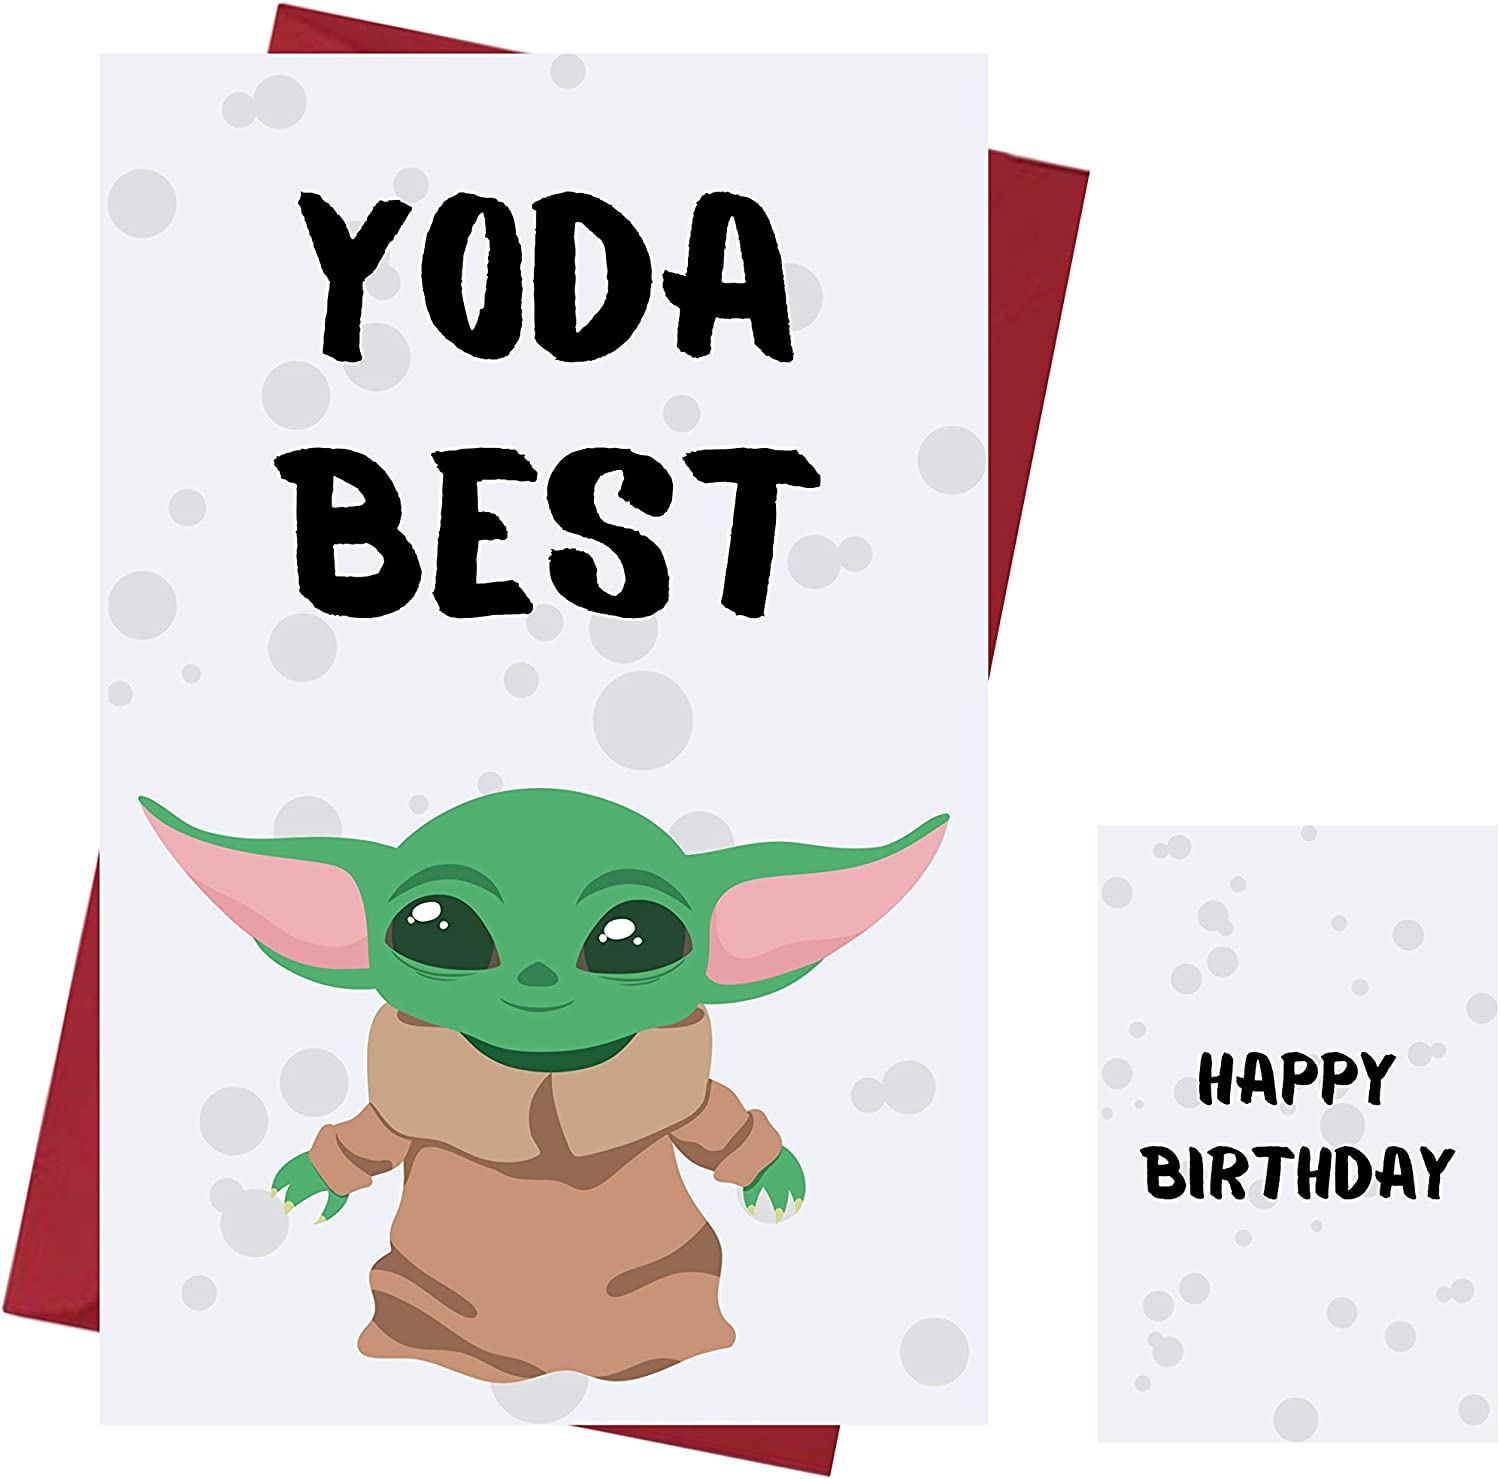 Amazon Com Funny Baby Yoda Birthday Card Baby Yoda Anniversary Card Star Wars Happy Birthday Card Star Wars Birthday Card With Enveloppe Office Products